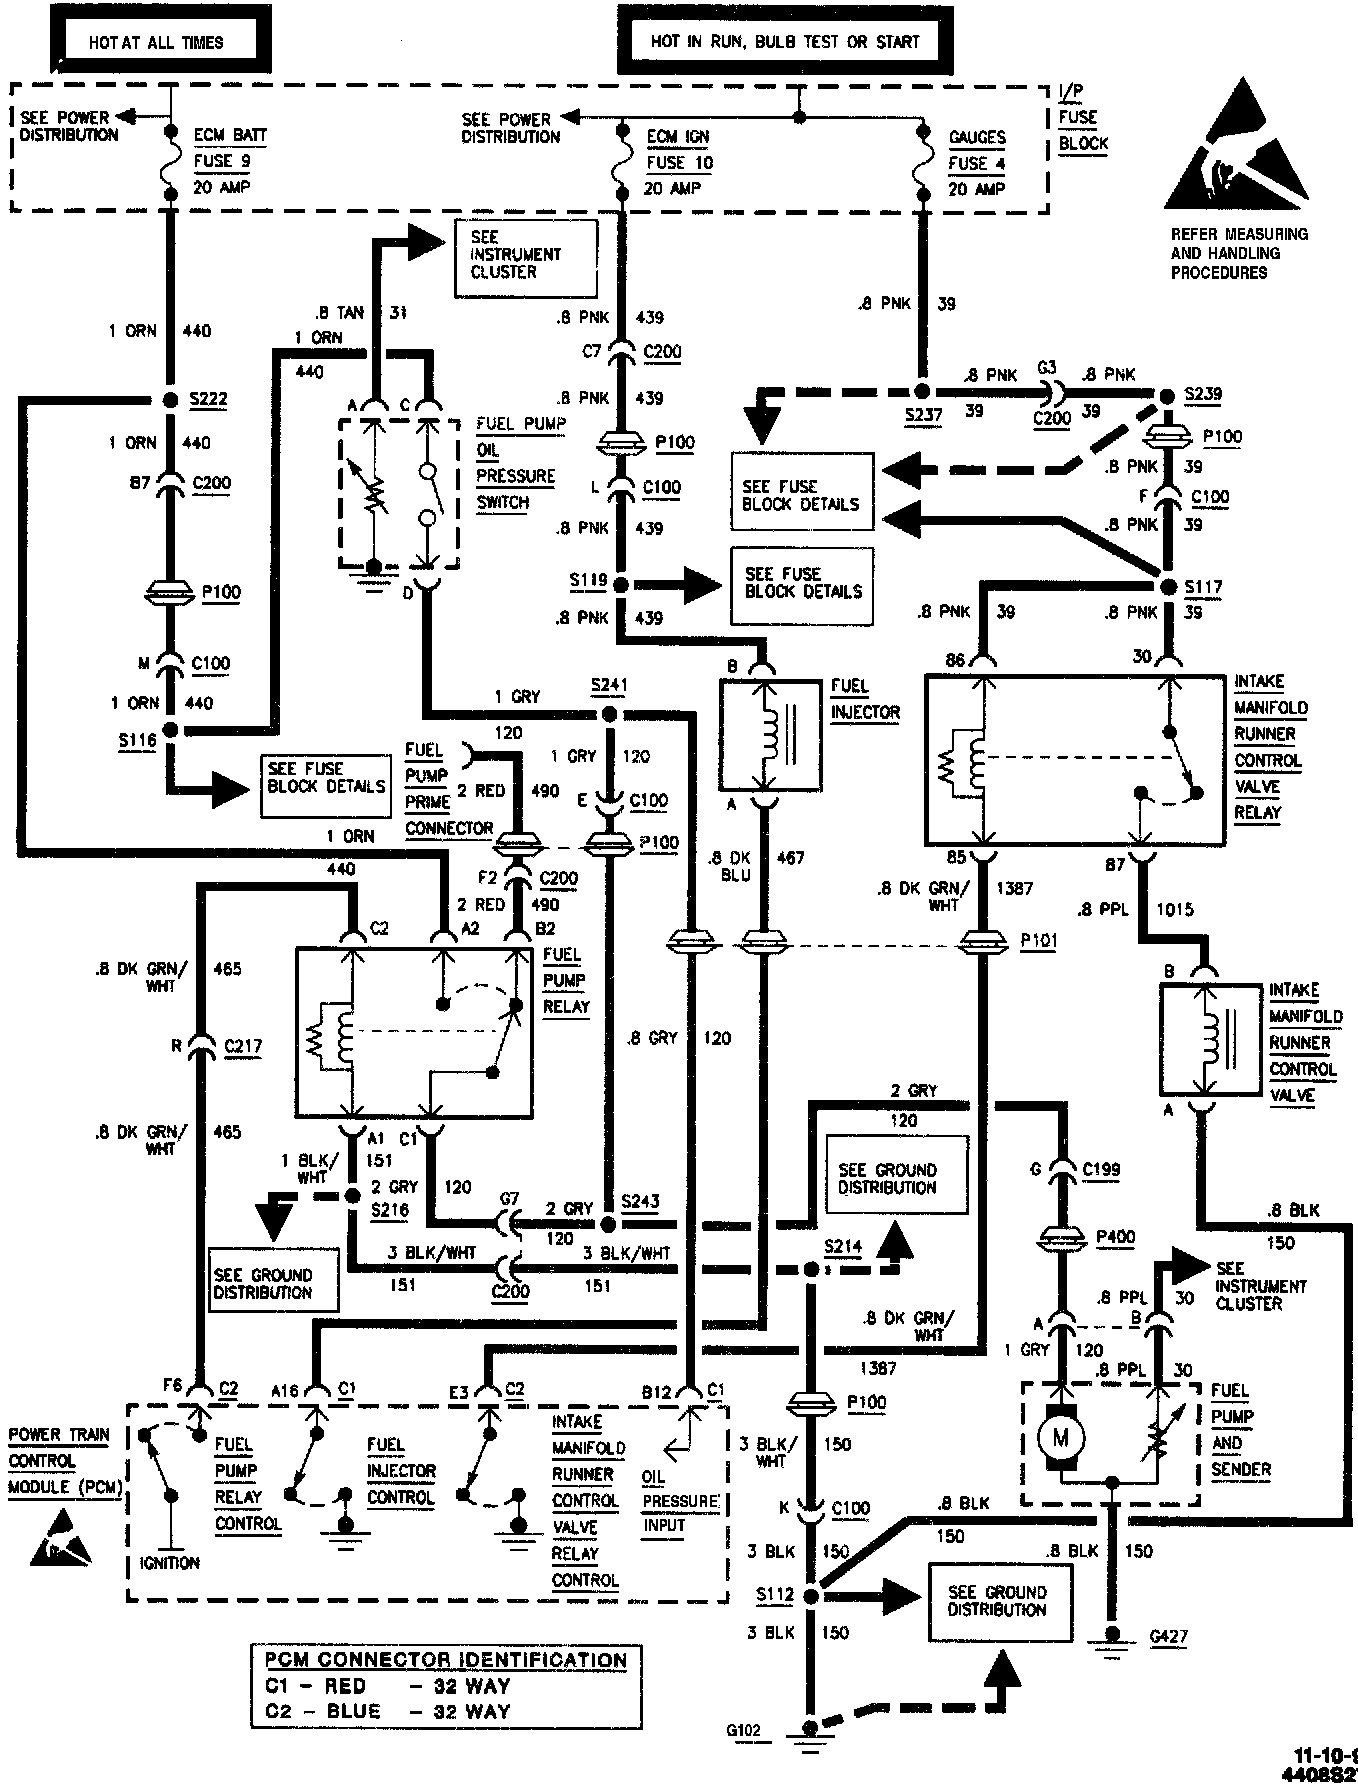 Metra 70 5520 Wiring Diagram Free Download • Playapk.co Regarding - Metra 70-5520 Wiring Diagram